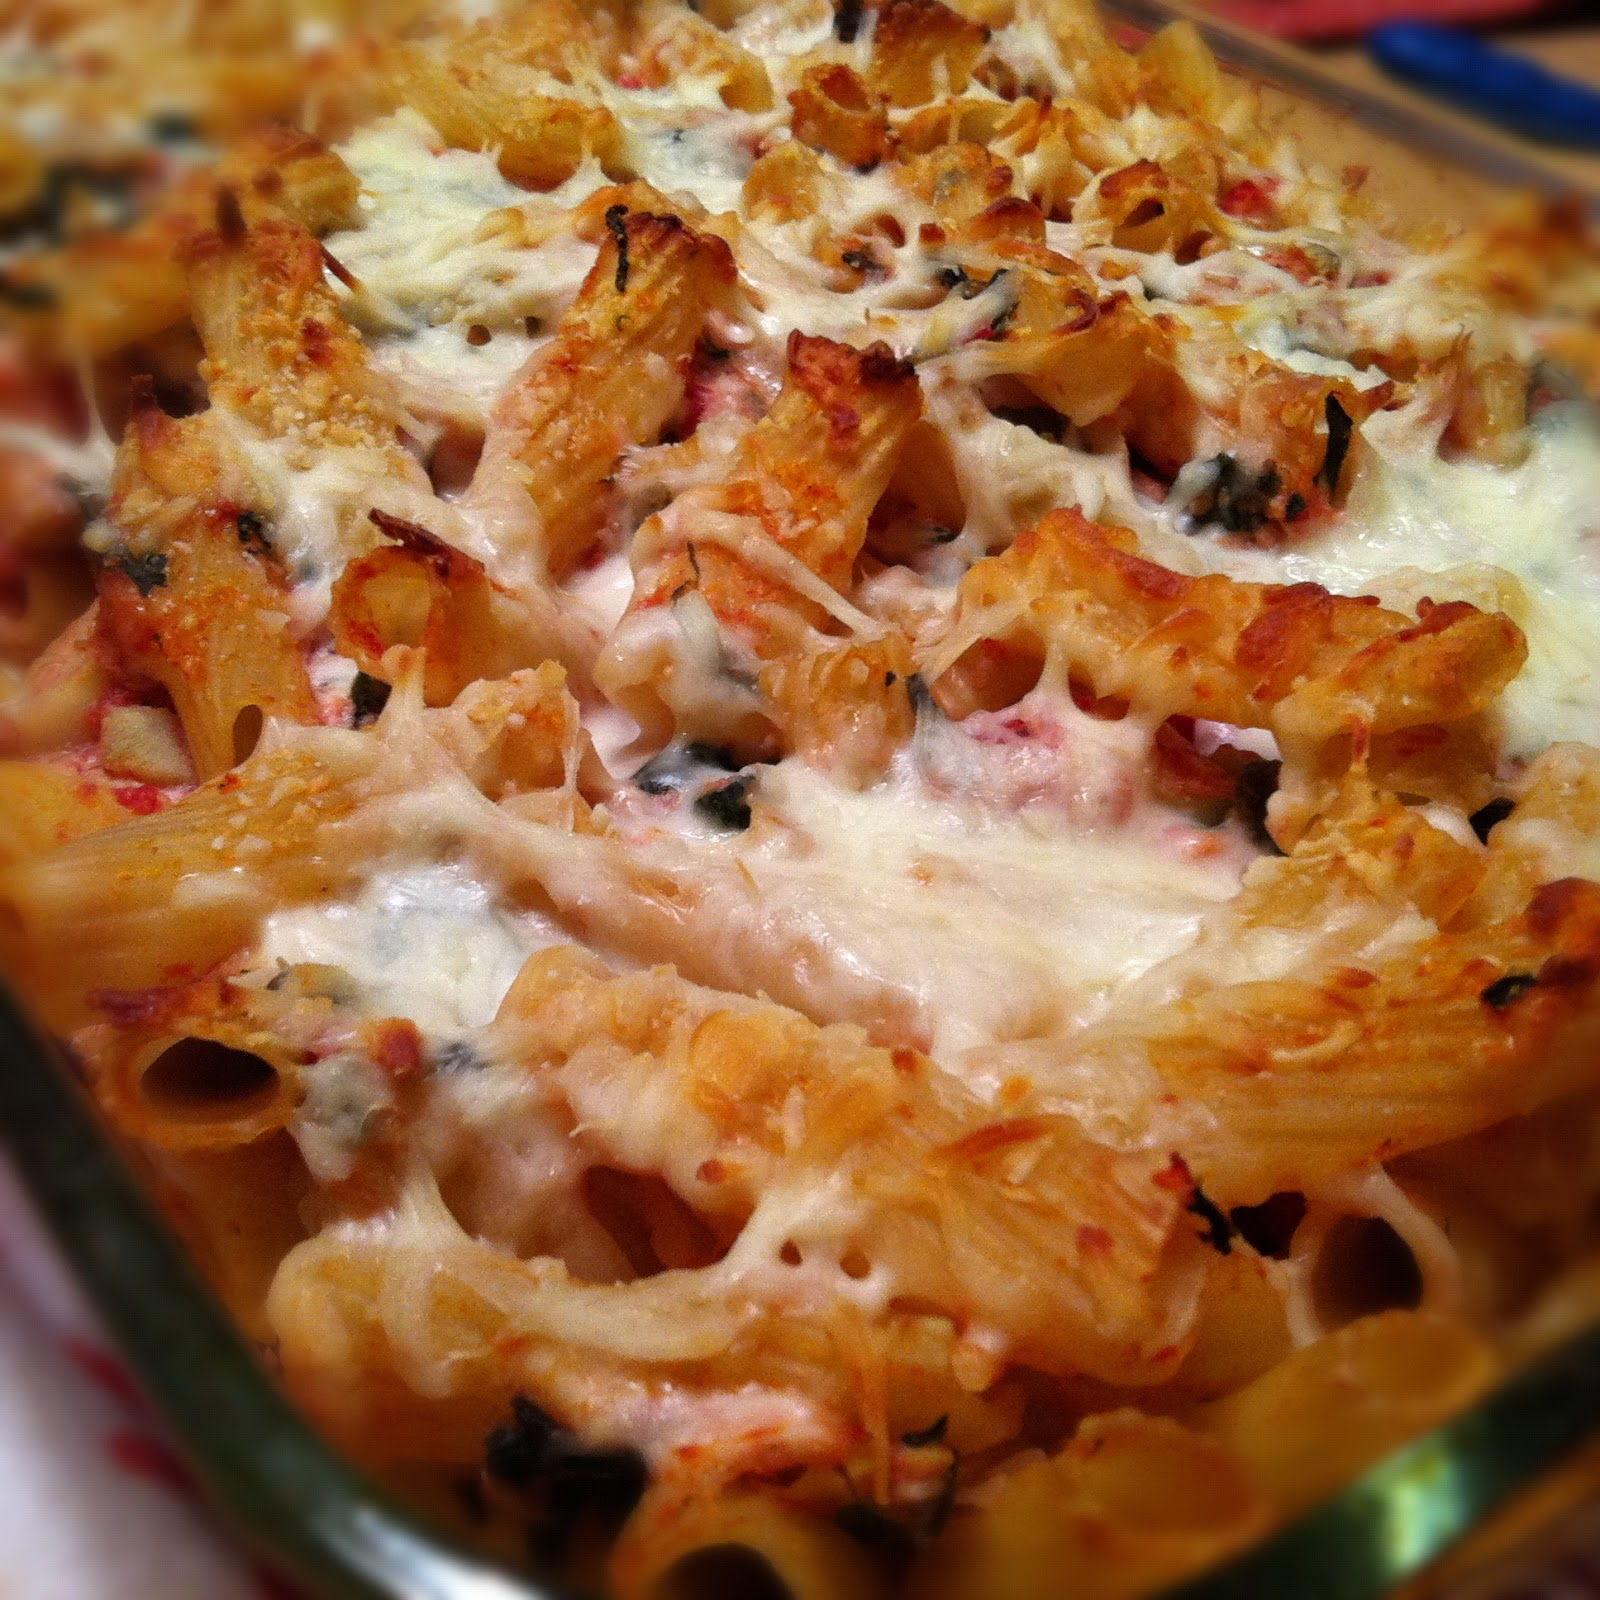 What's Cooking in the Burbs: Spinach and Artichoke Baked Ziti